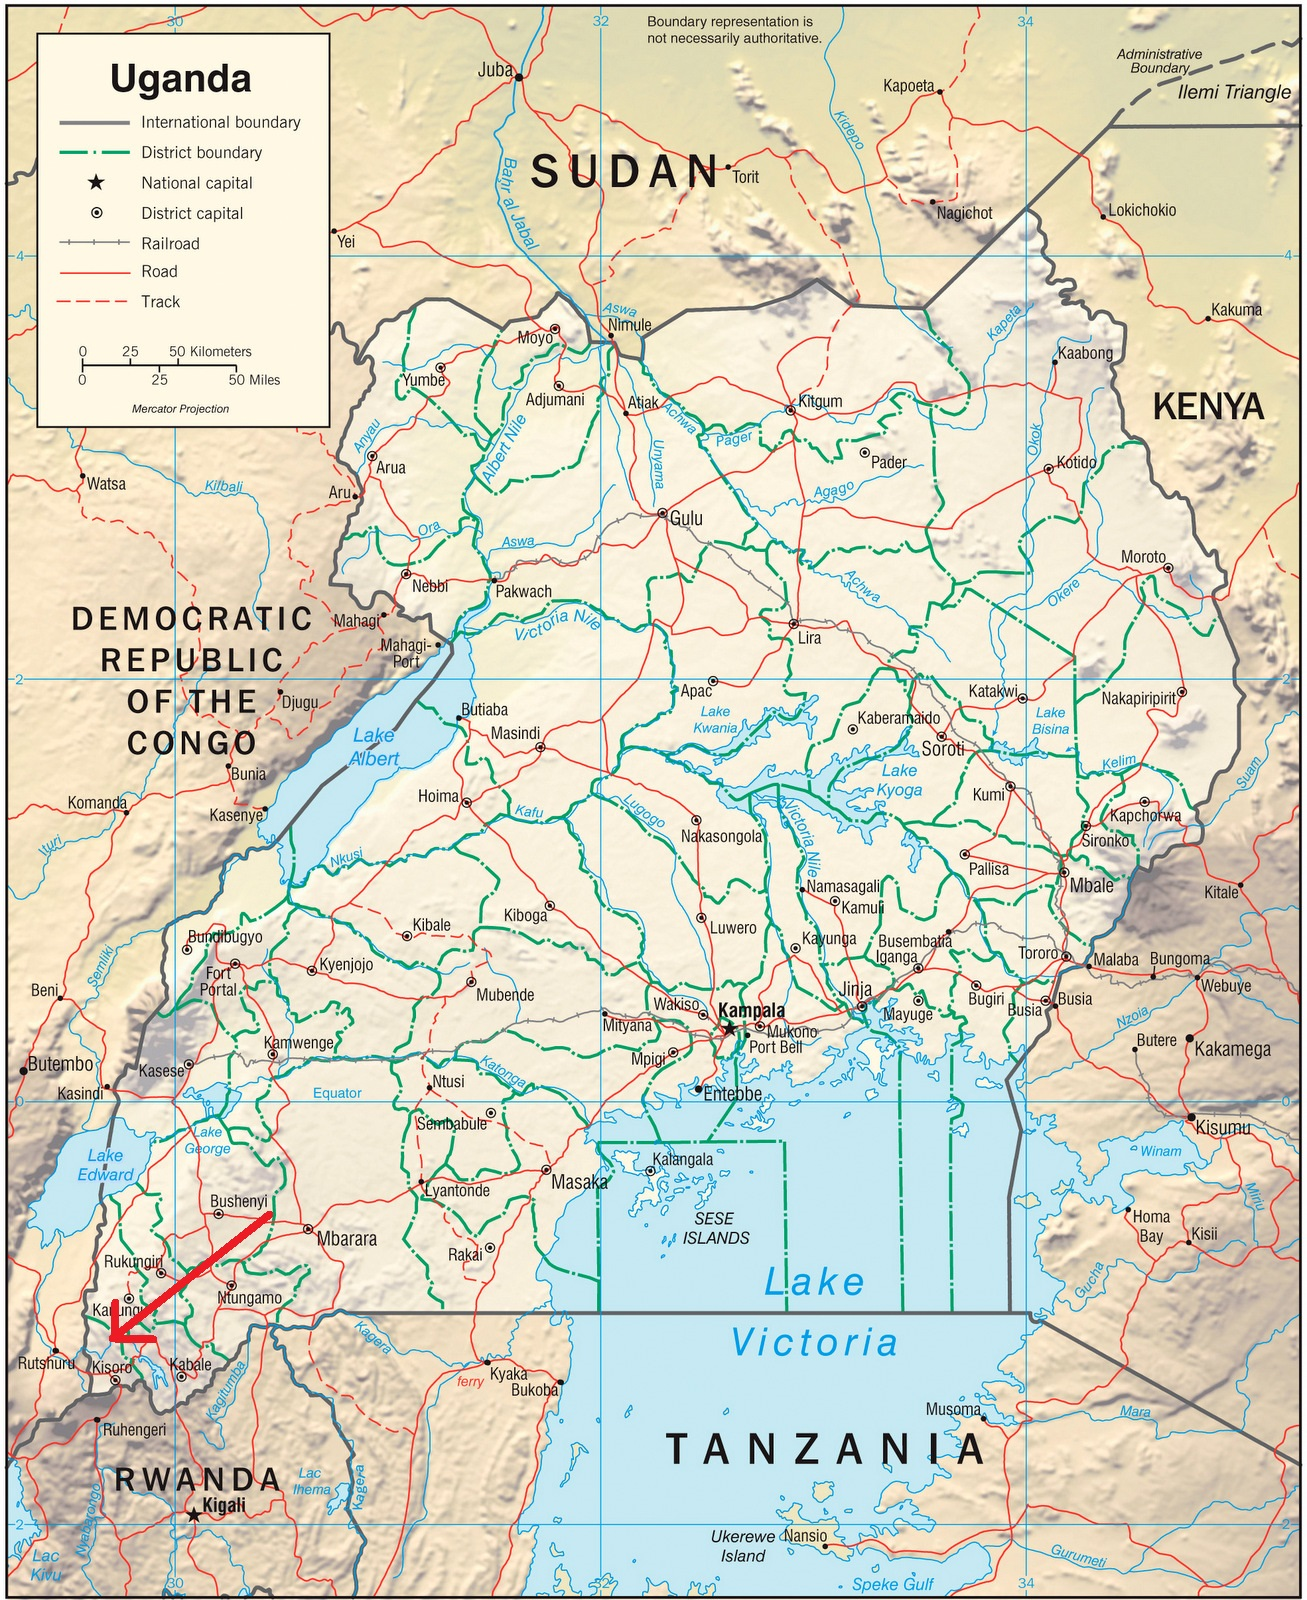 the end of the red arrow indicates the approximate position of the park adjacent to the drc and rwanda